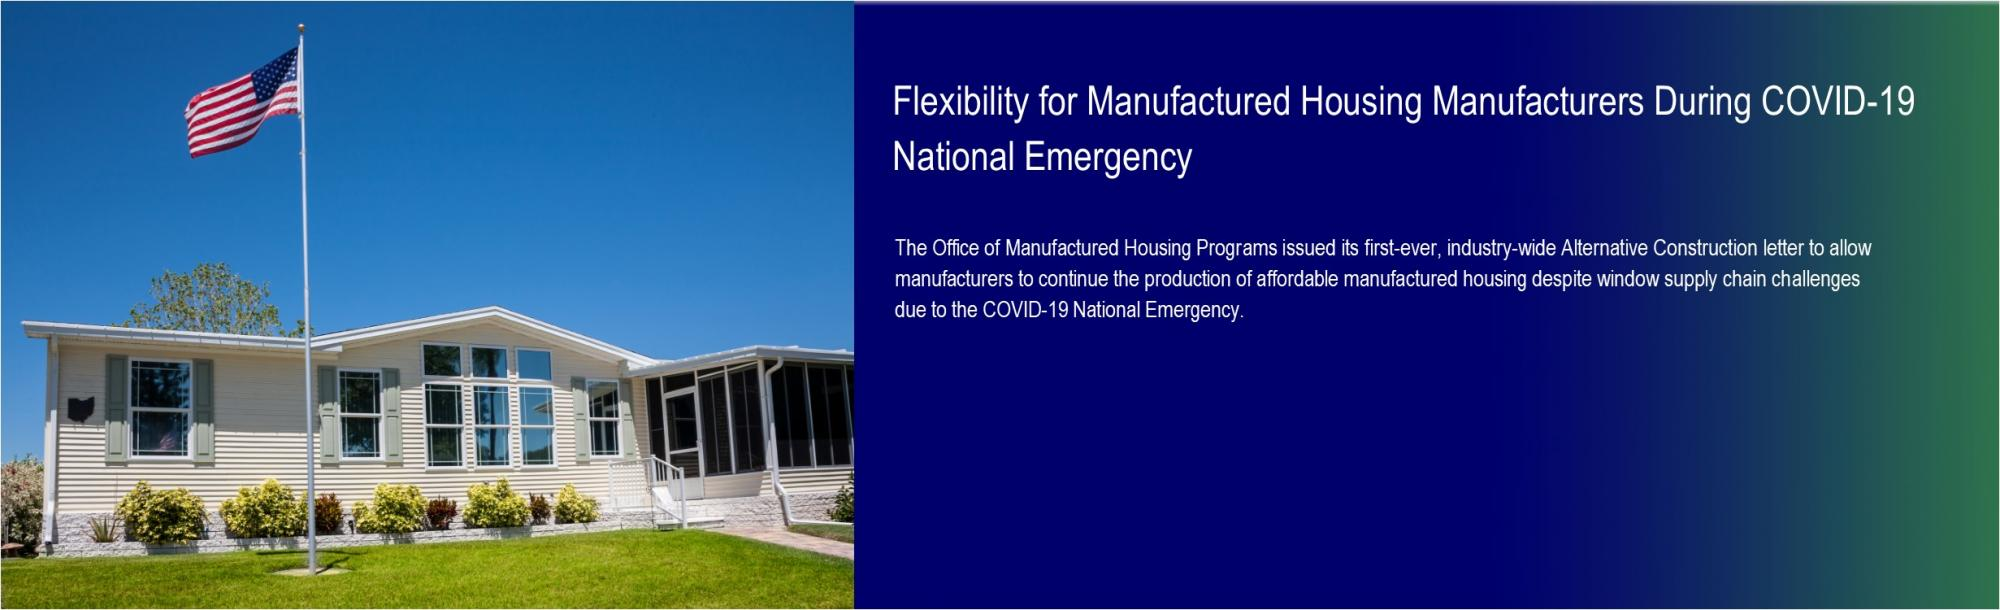 [Flexibility for Manufactured Housing Manufacturers During COVID-19 National Emergency].